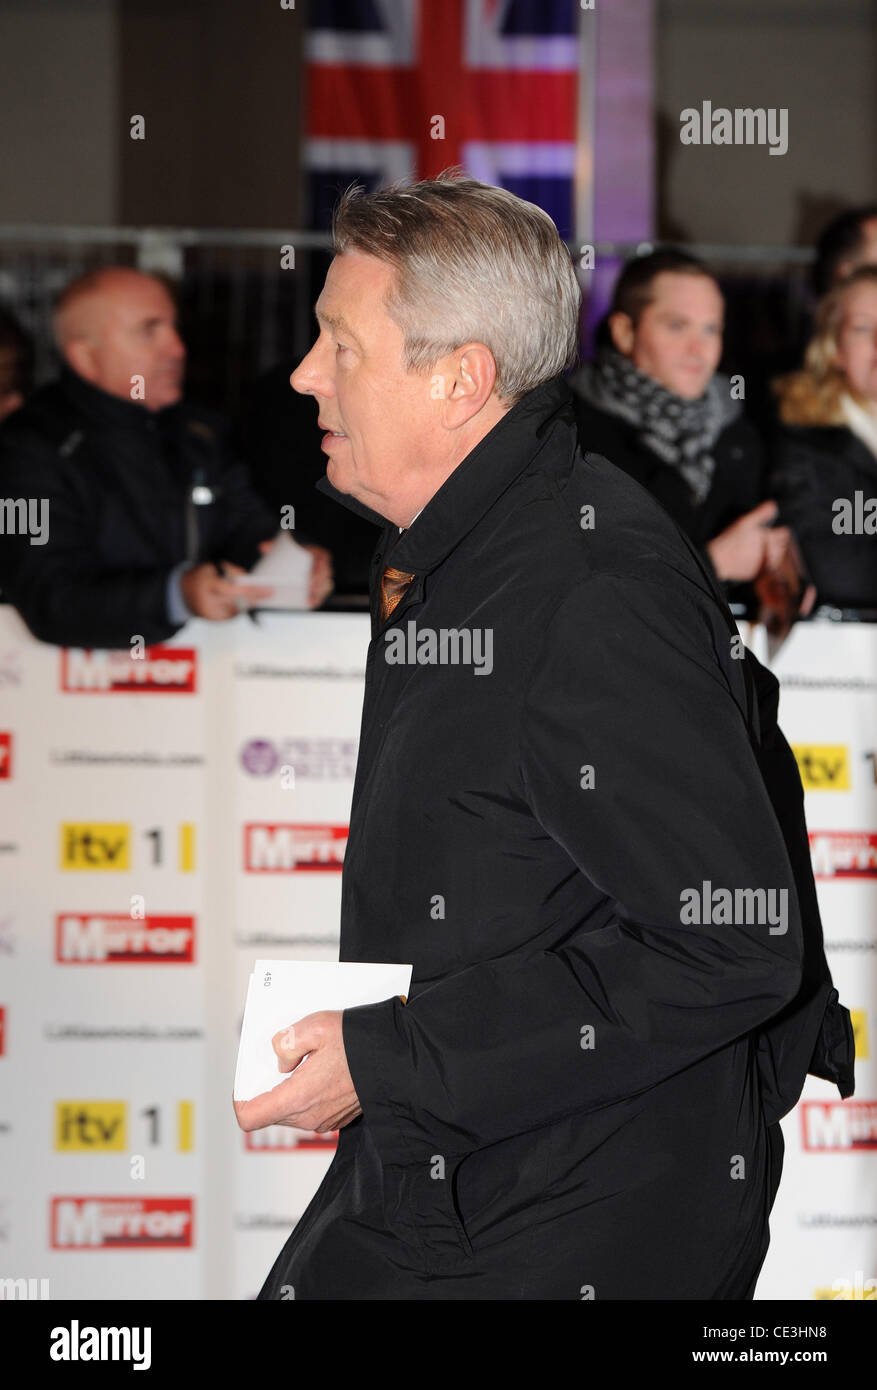 Alan Johnson Pride of Britain Awards held at the Grosvenor House - Arrivals. London, England - 08.11.10 - Stock Image